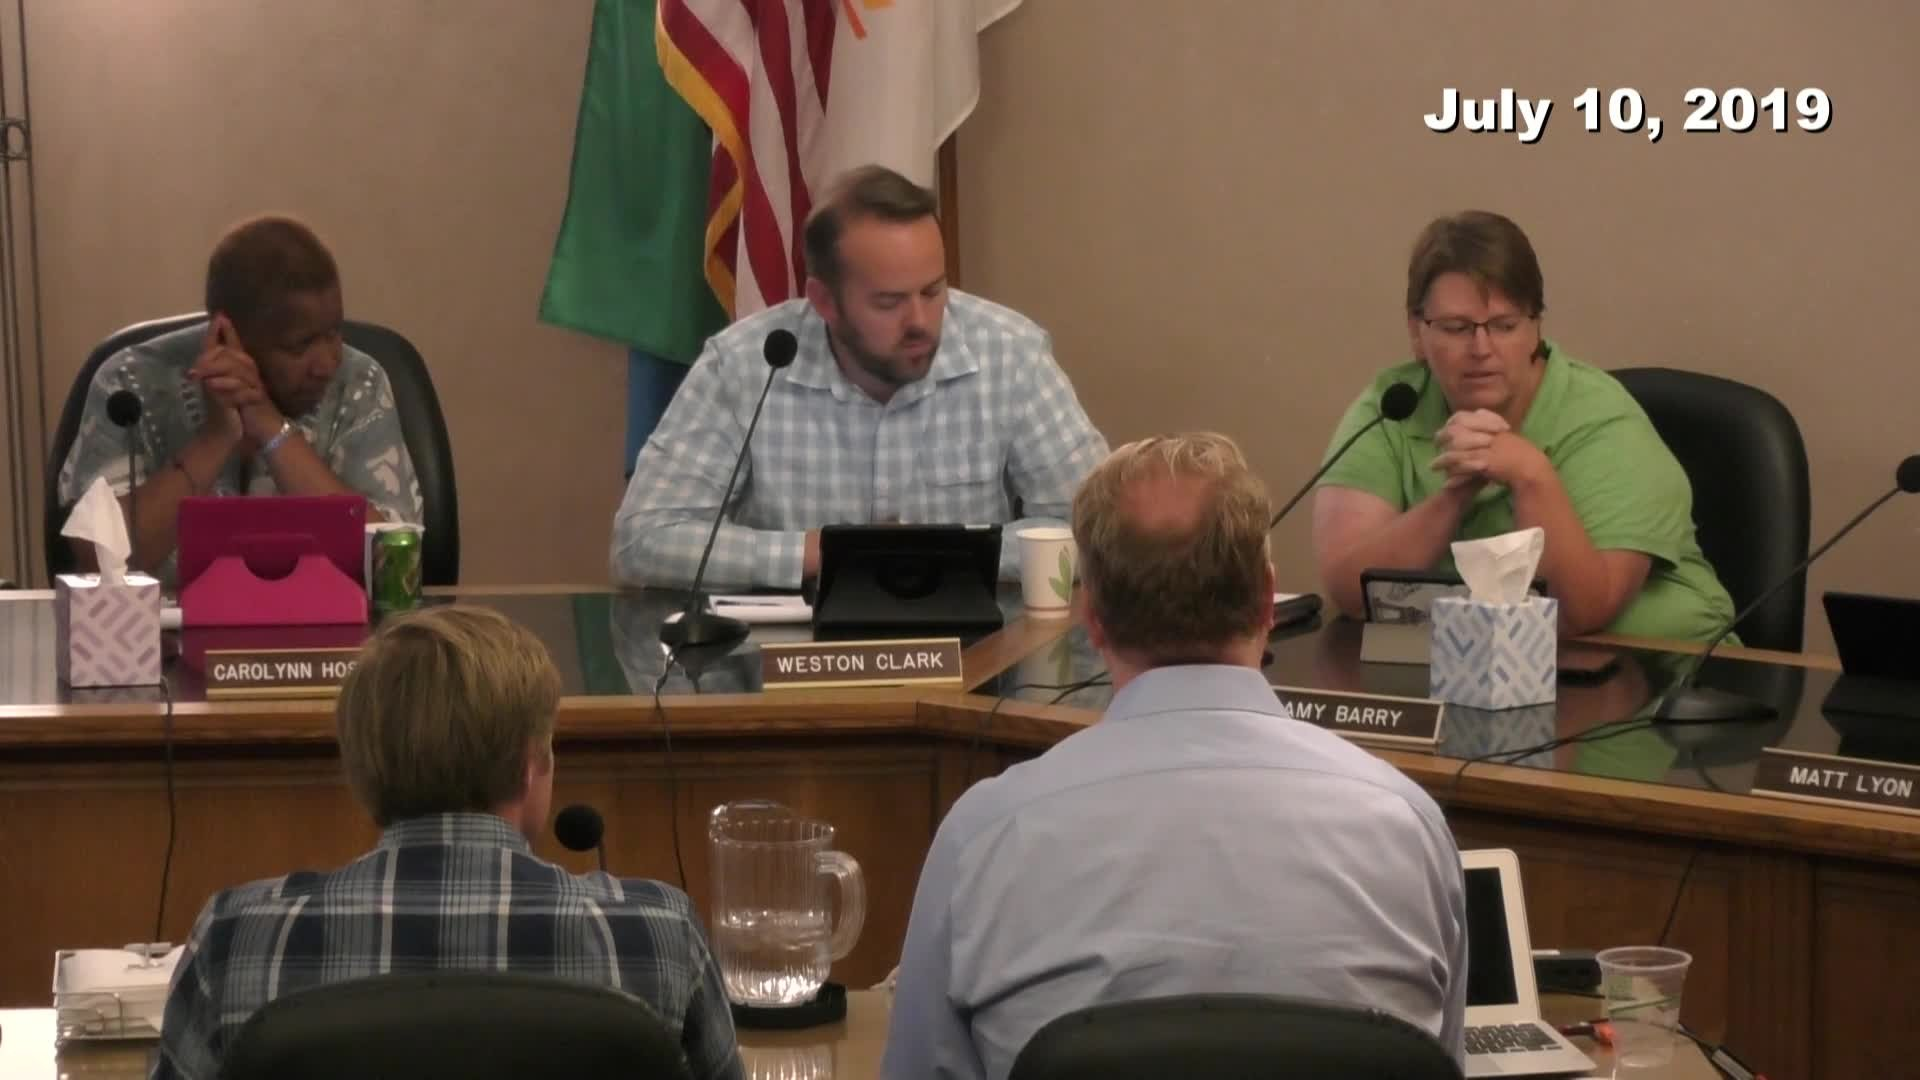 Planning Commission Meeting - 07/10/2019